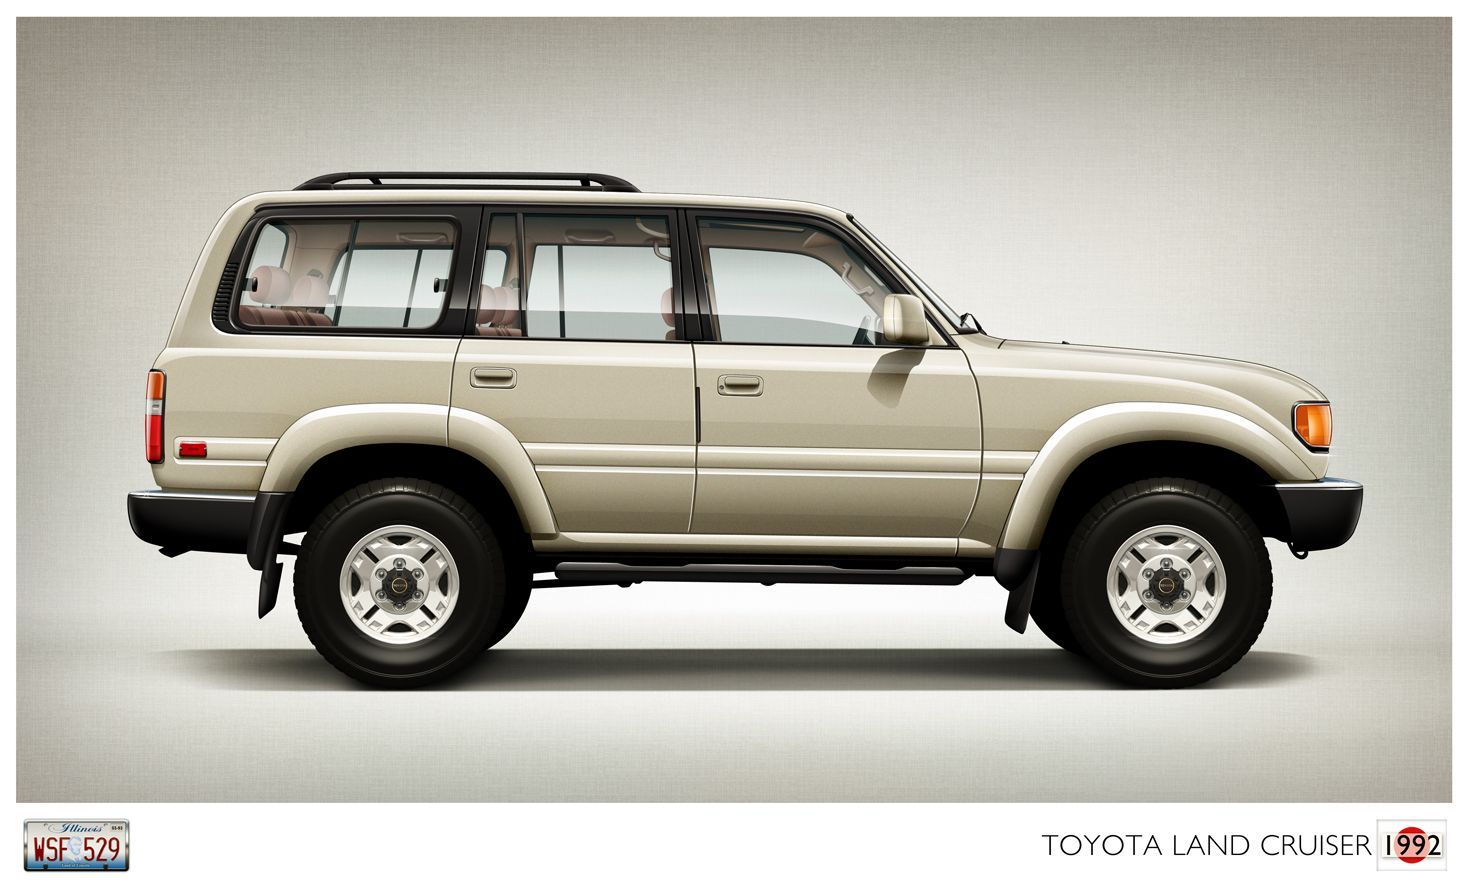 I Had Firstcar Do An Illustration Of My 1992 Toyota Land Cruiser And It Came Out Great Thanks Mark Land Cruiser Toyota Land Cruiser Cruisers